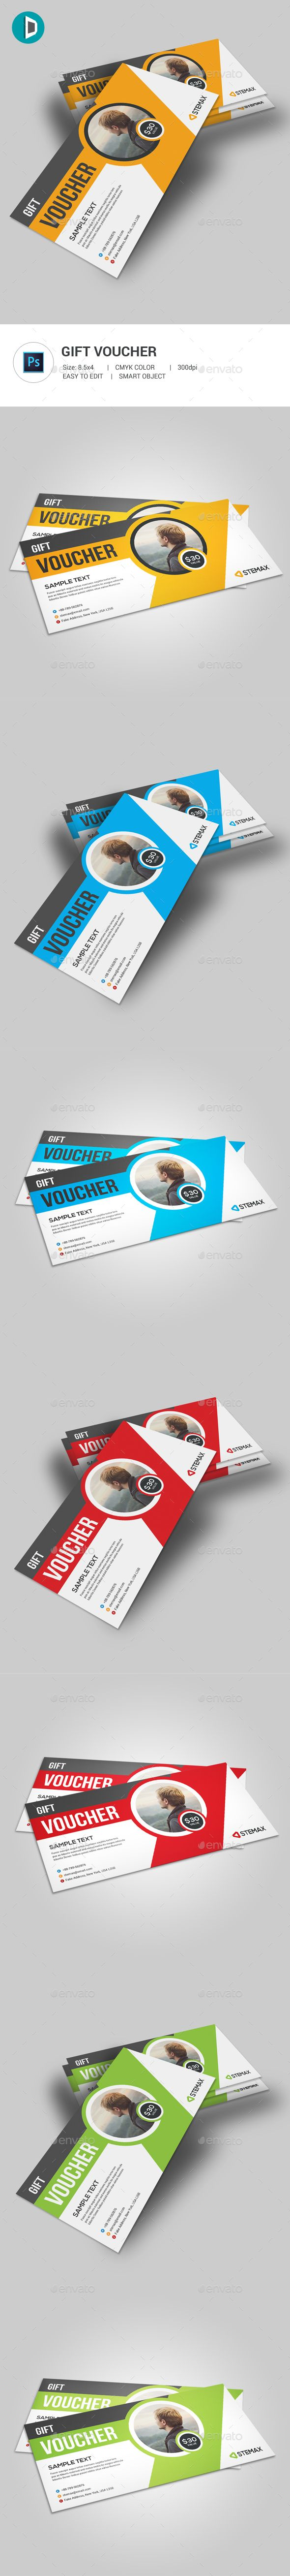 Top Result 50 Best Of Templates for Gift Certificates Free Downloads ...